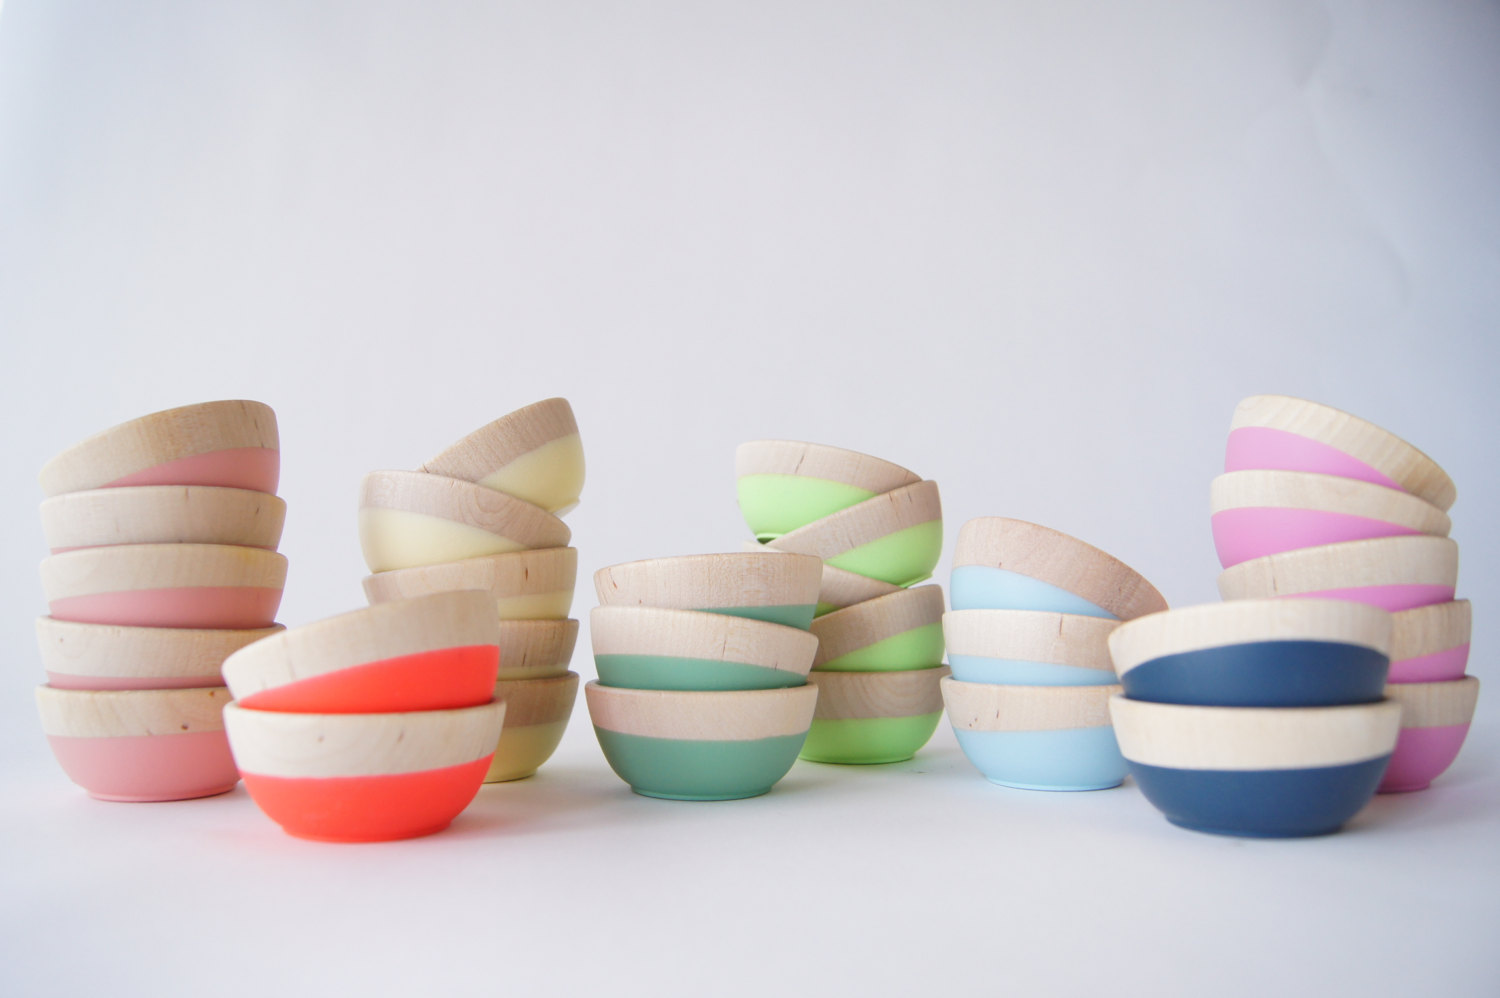 dipped wooden bowls